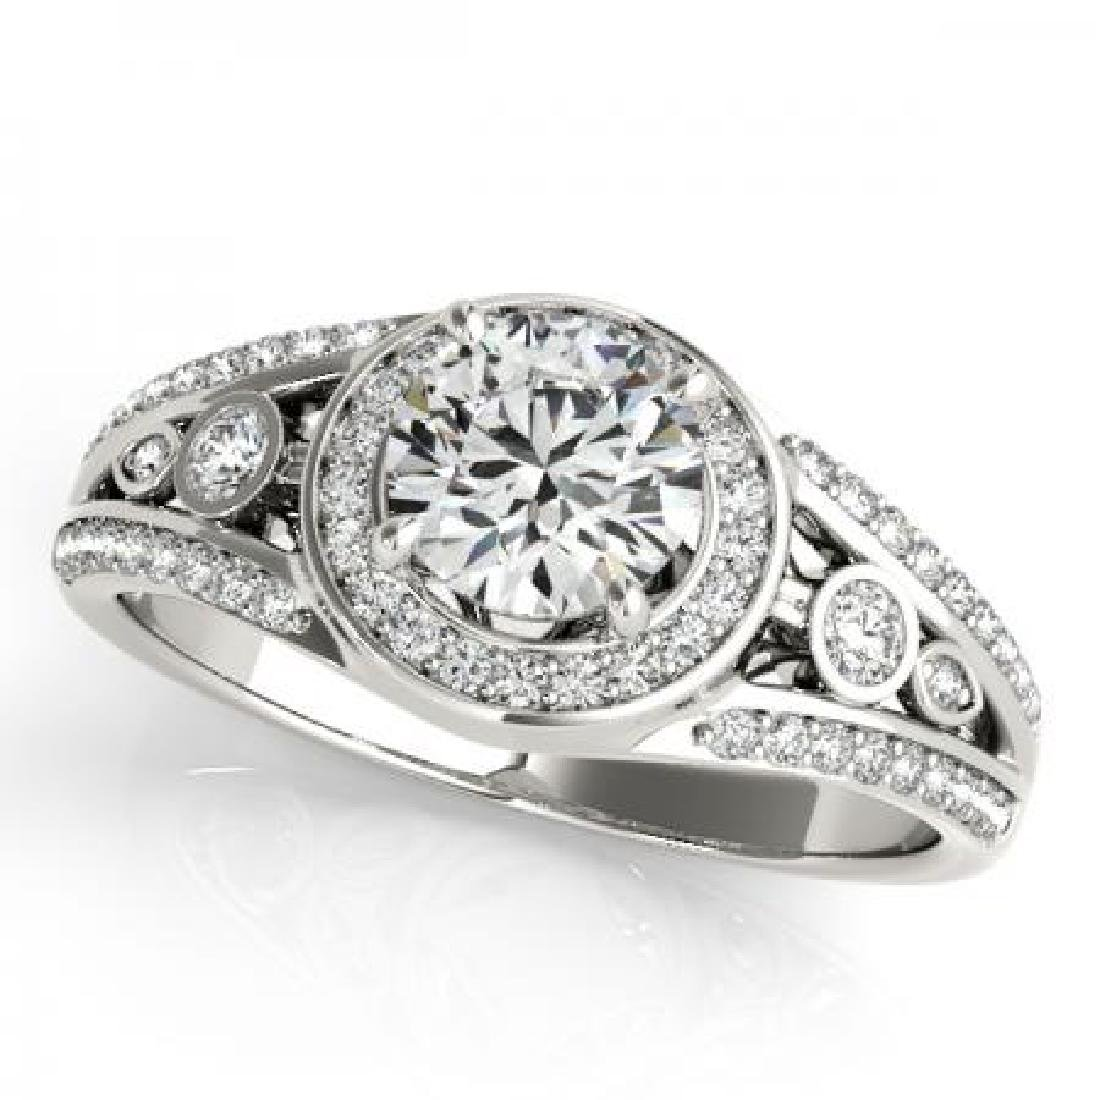 CERTIFIED PLATINUM 1.15 CTW G-H/VS-SI1 DIAMOND HALO ENG